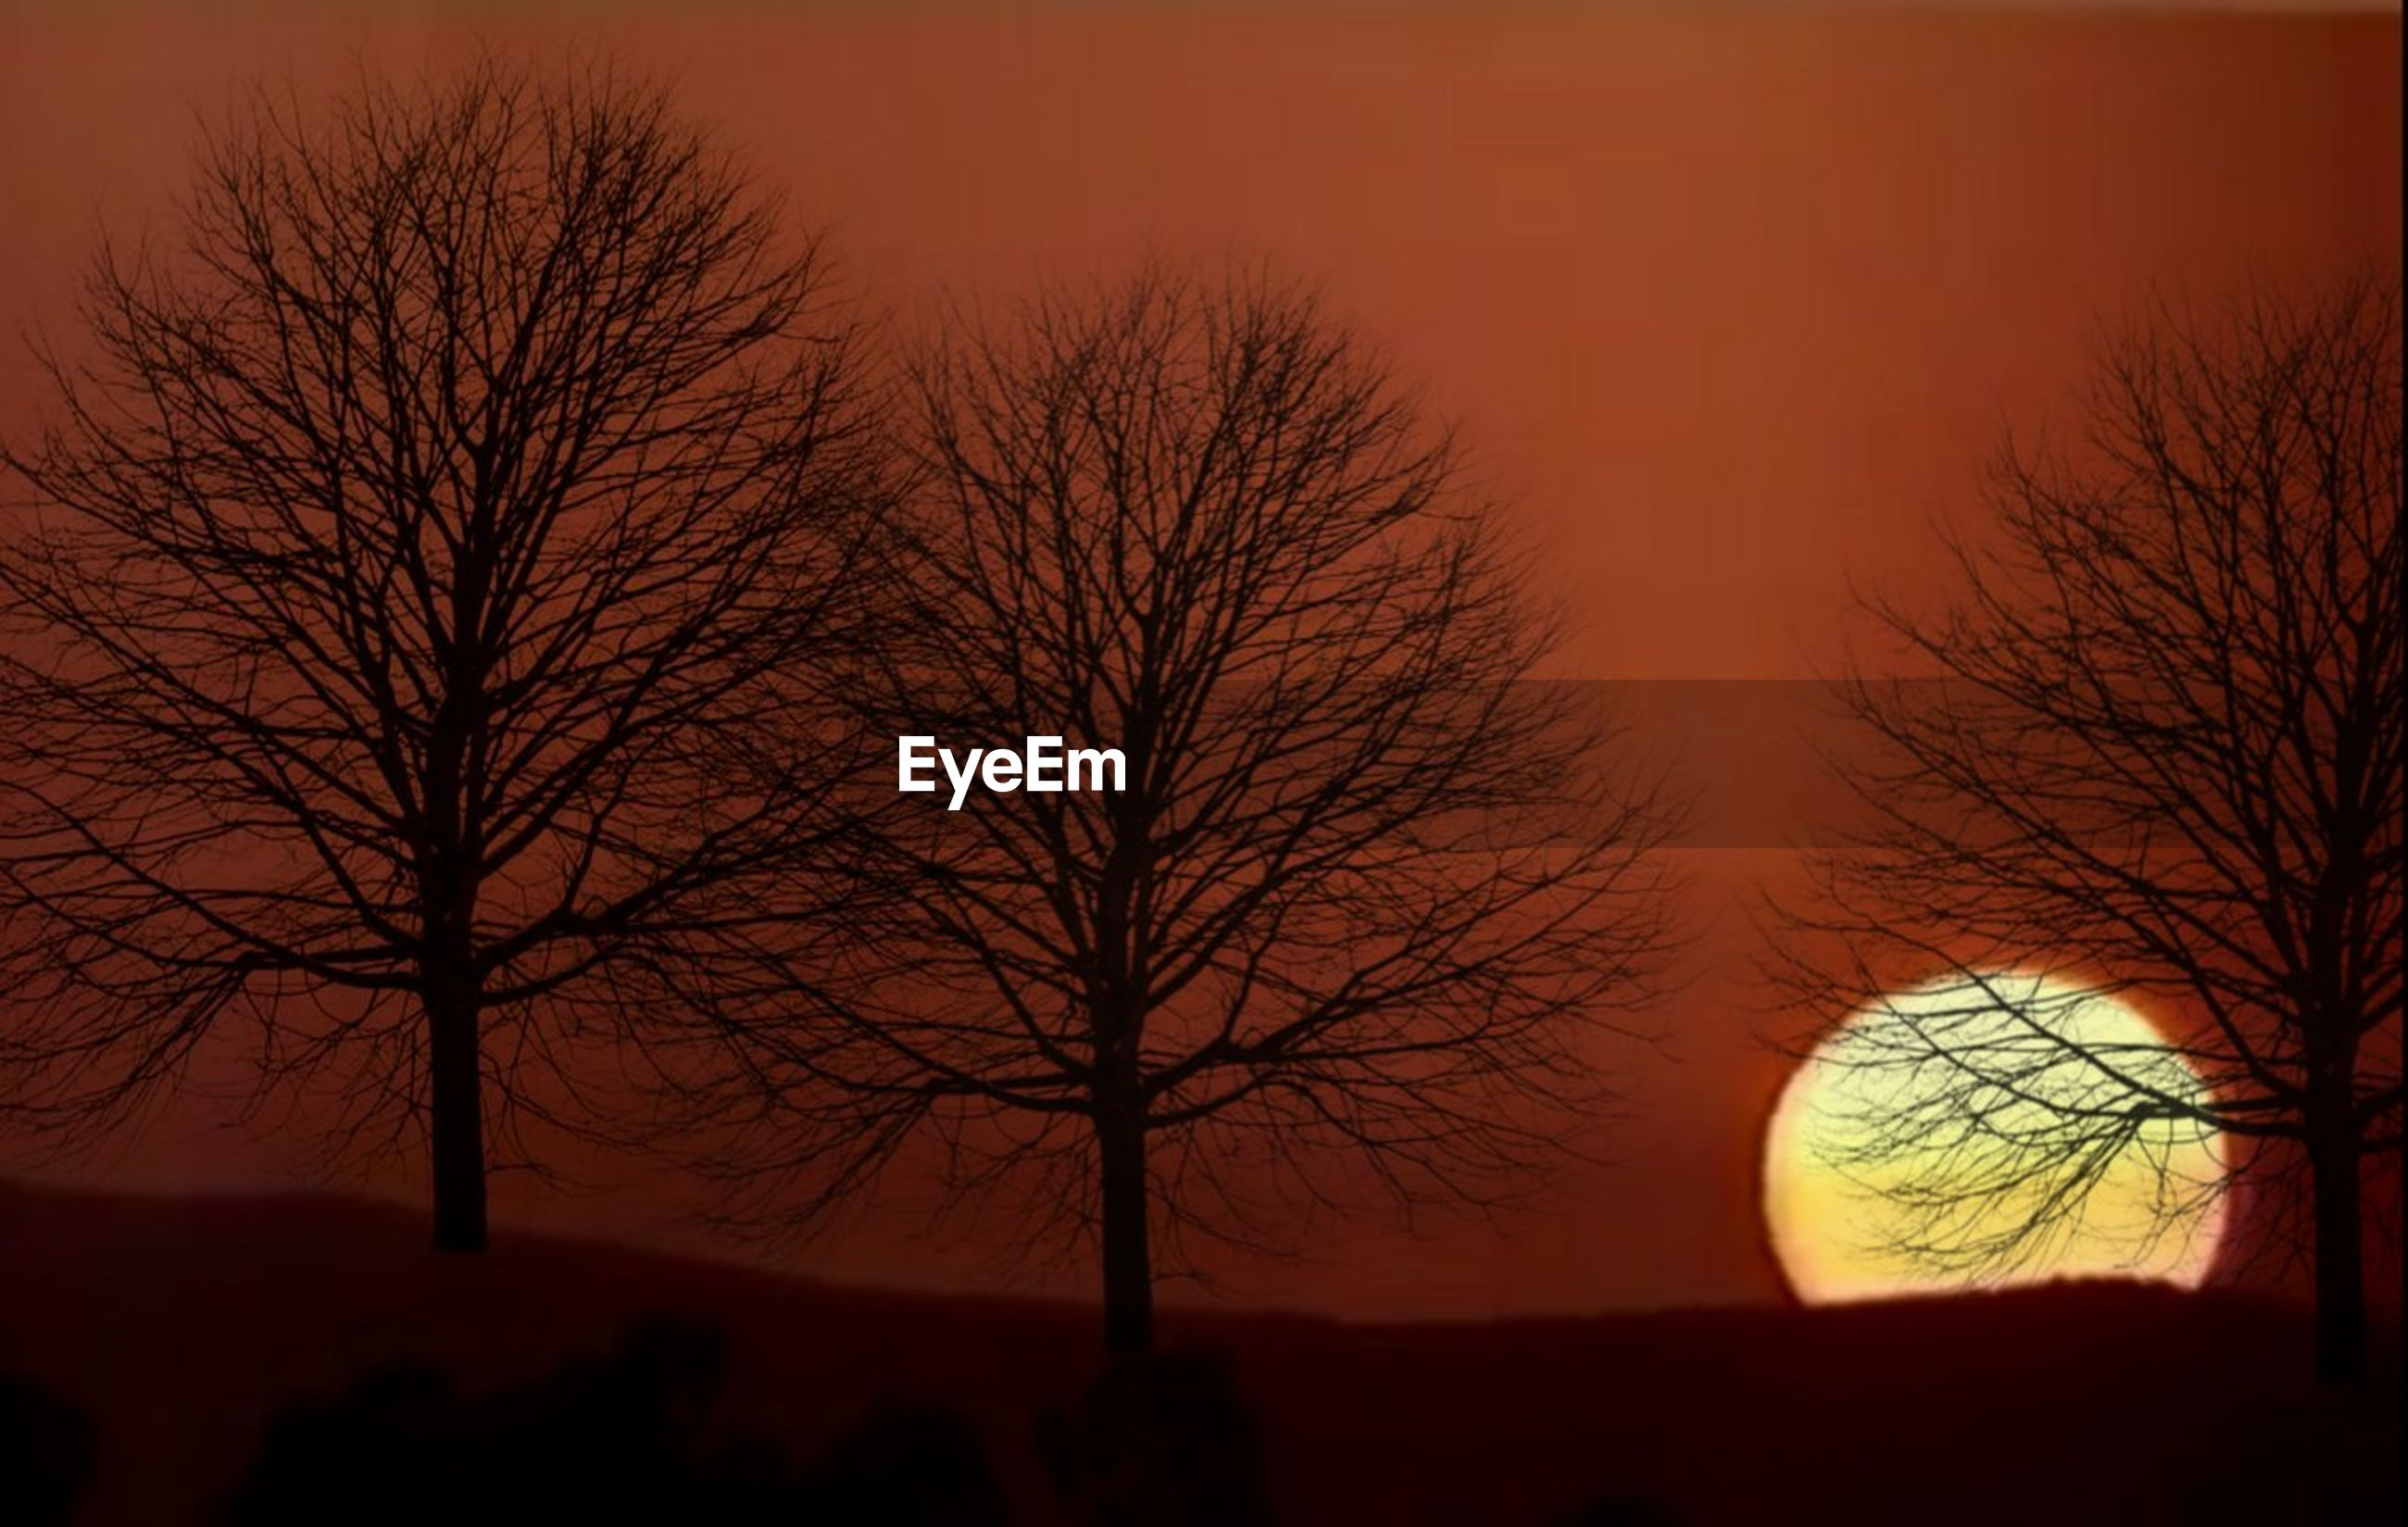 tree, bare tree, plant, silhouette, branch, sky, night, nature, no people, dusk, twilight, sunset, landscape, outdoors, environment, scenics - nature, winter, beauty in nature, dark, textured effect